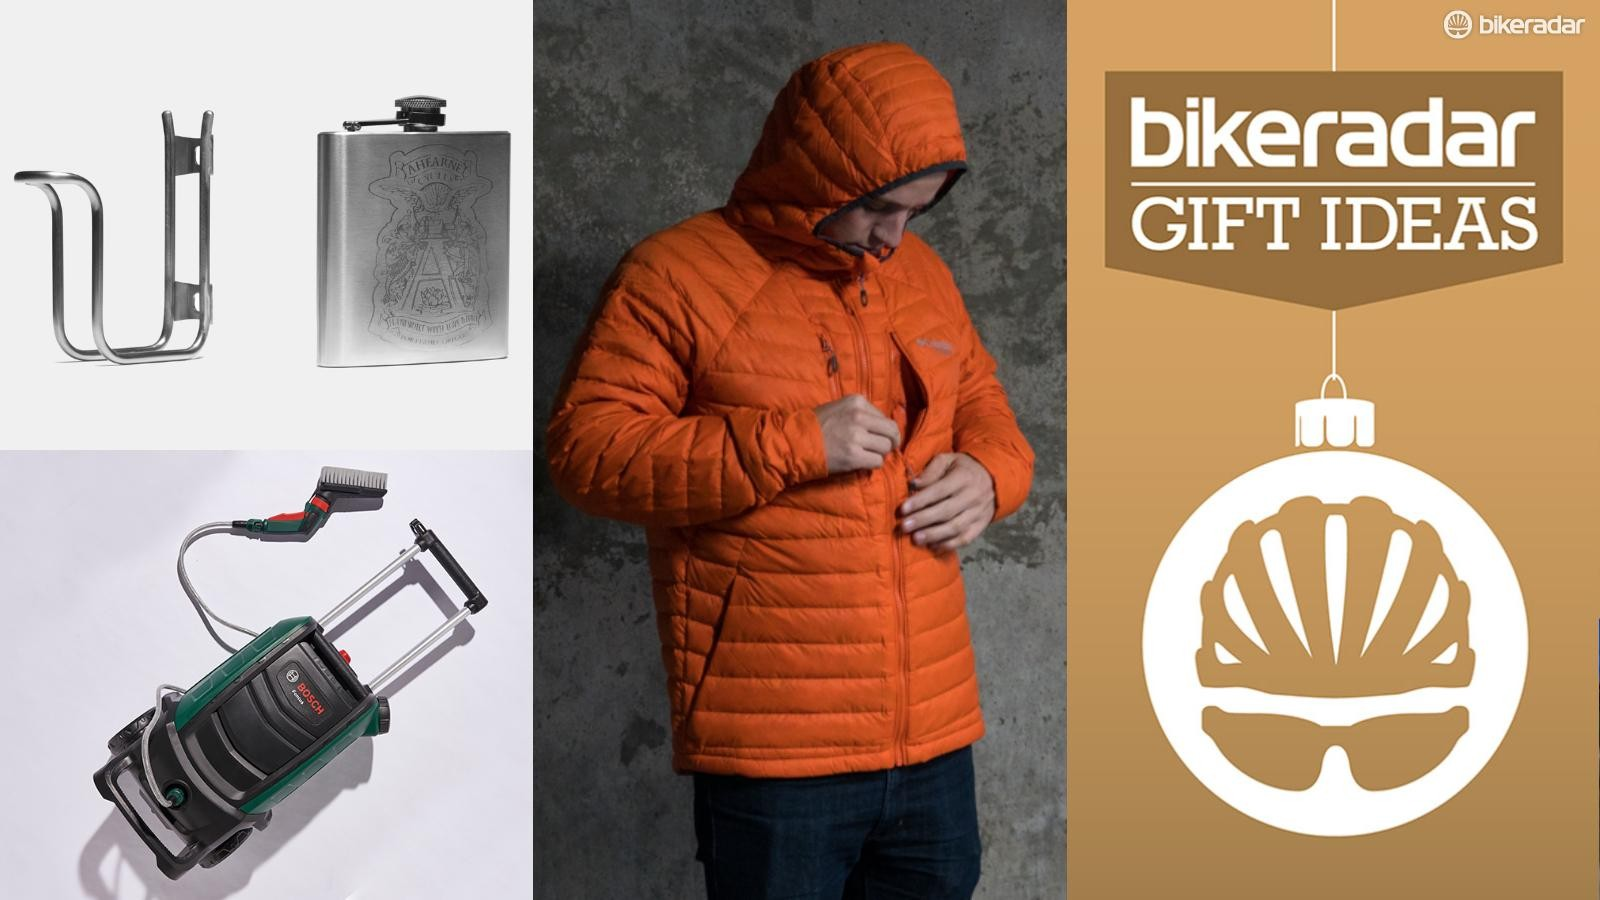 We have a few gift ideas for the CXer in your life